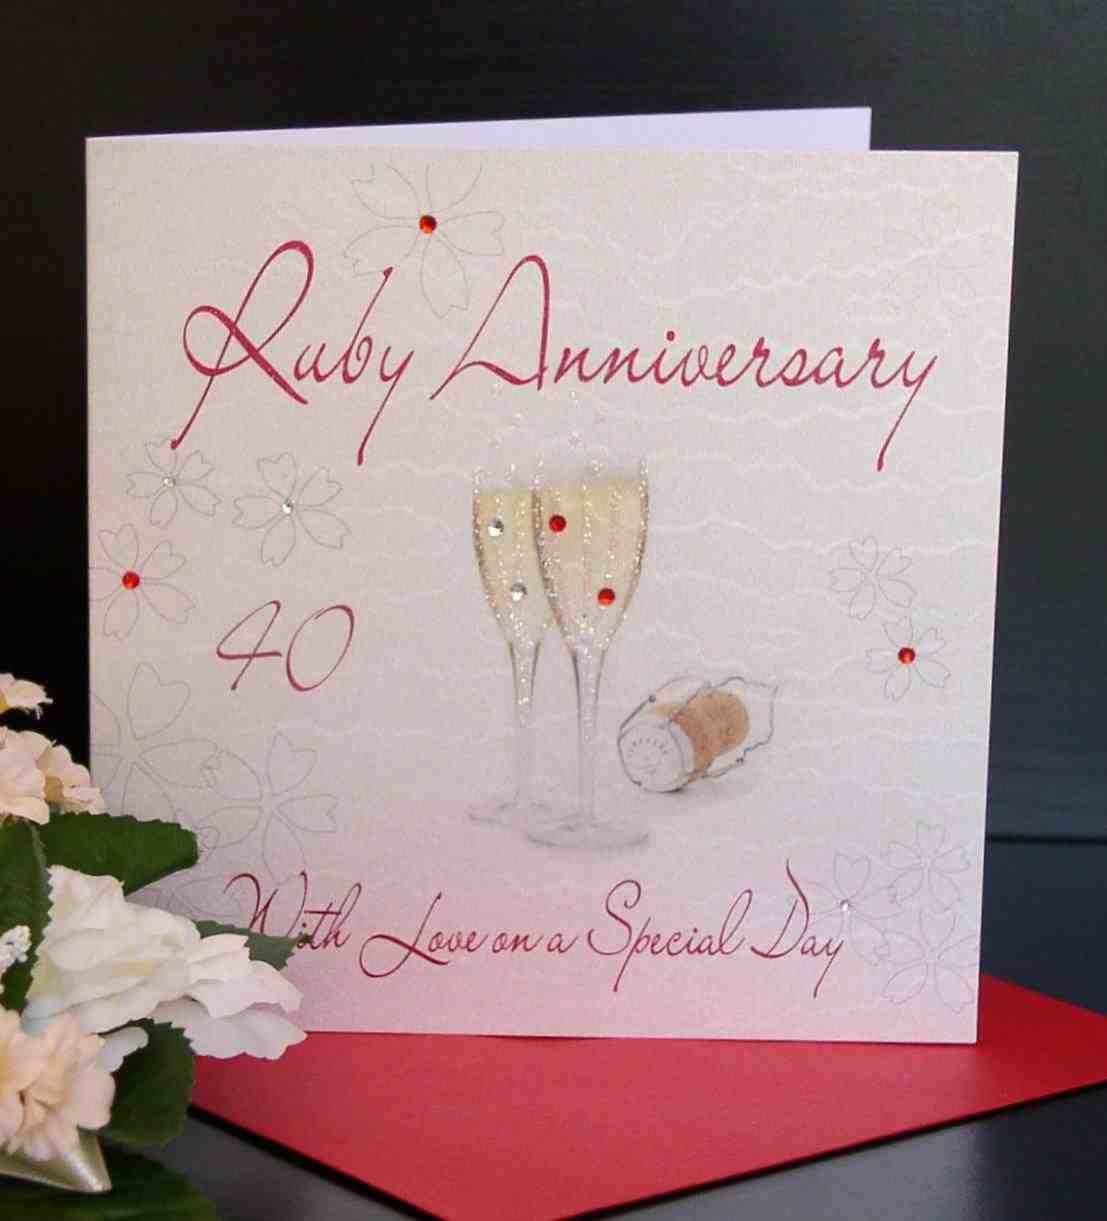 Wedding Anniversary Gifts For Parents Pinterest : Anniversary Gifts For Parents wedding gifts for parents Pinterest ...